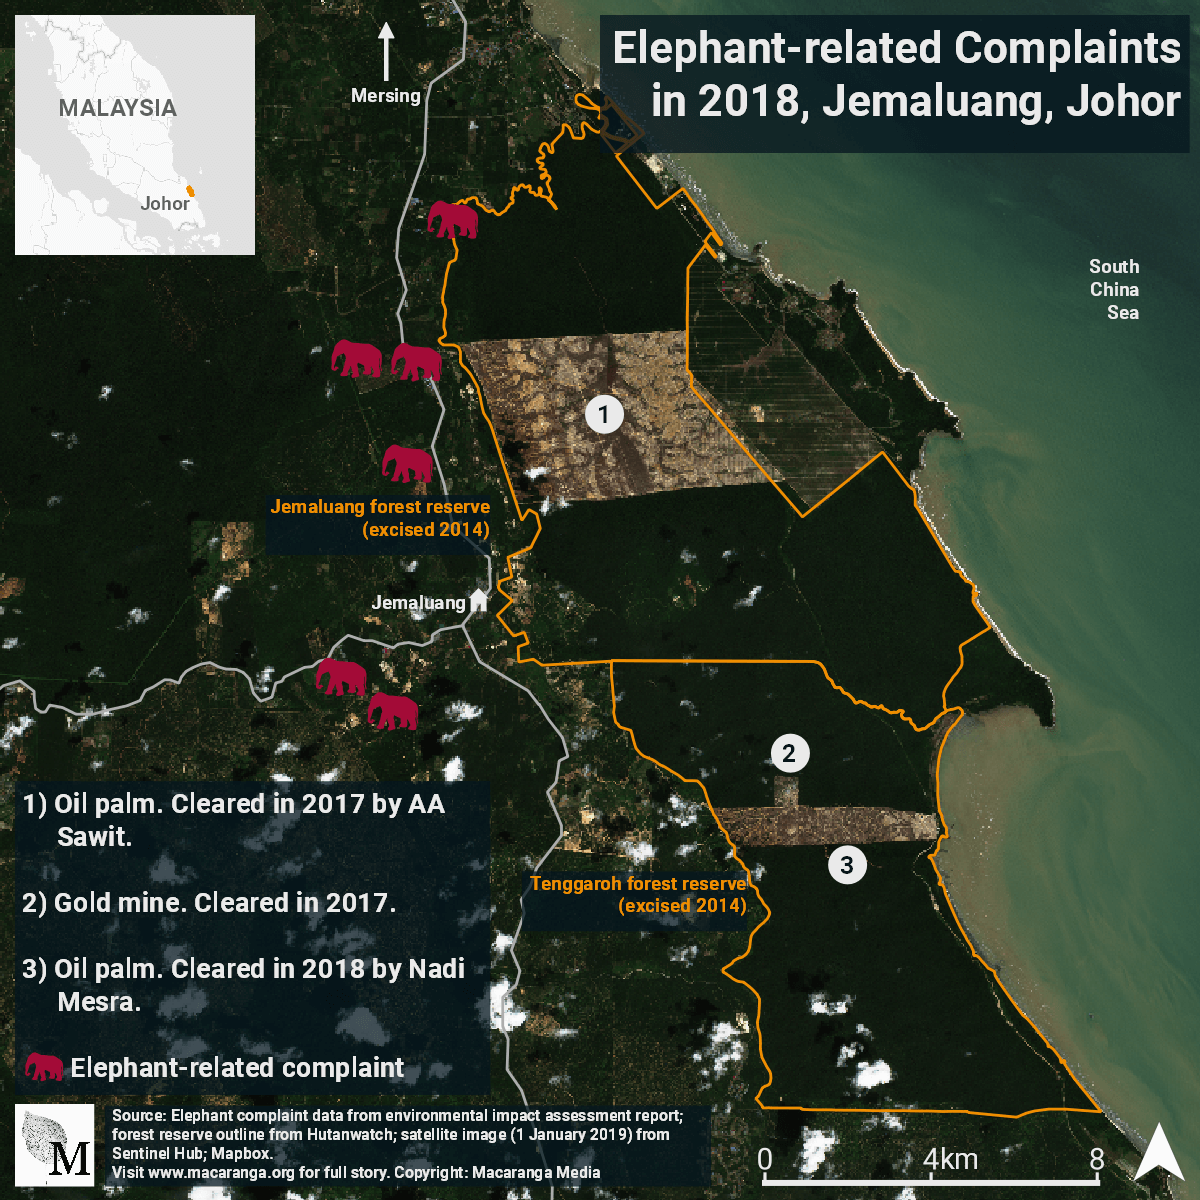 Location of elephant-related complaints in 2018 in Jemaluang, Johor.